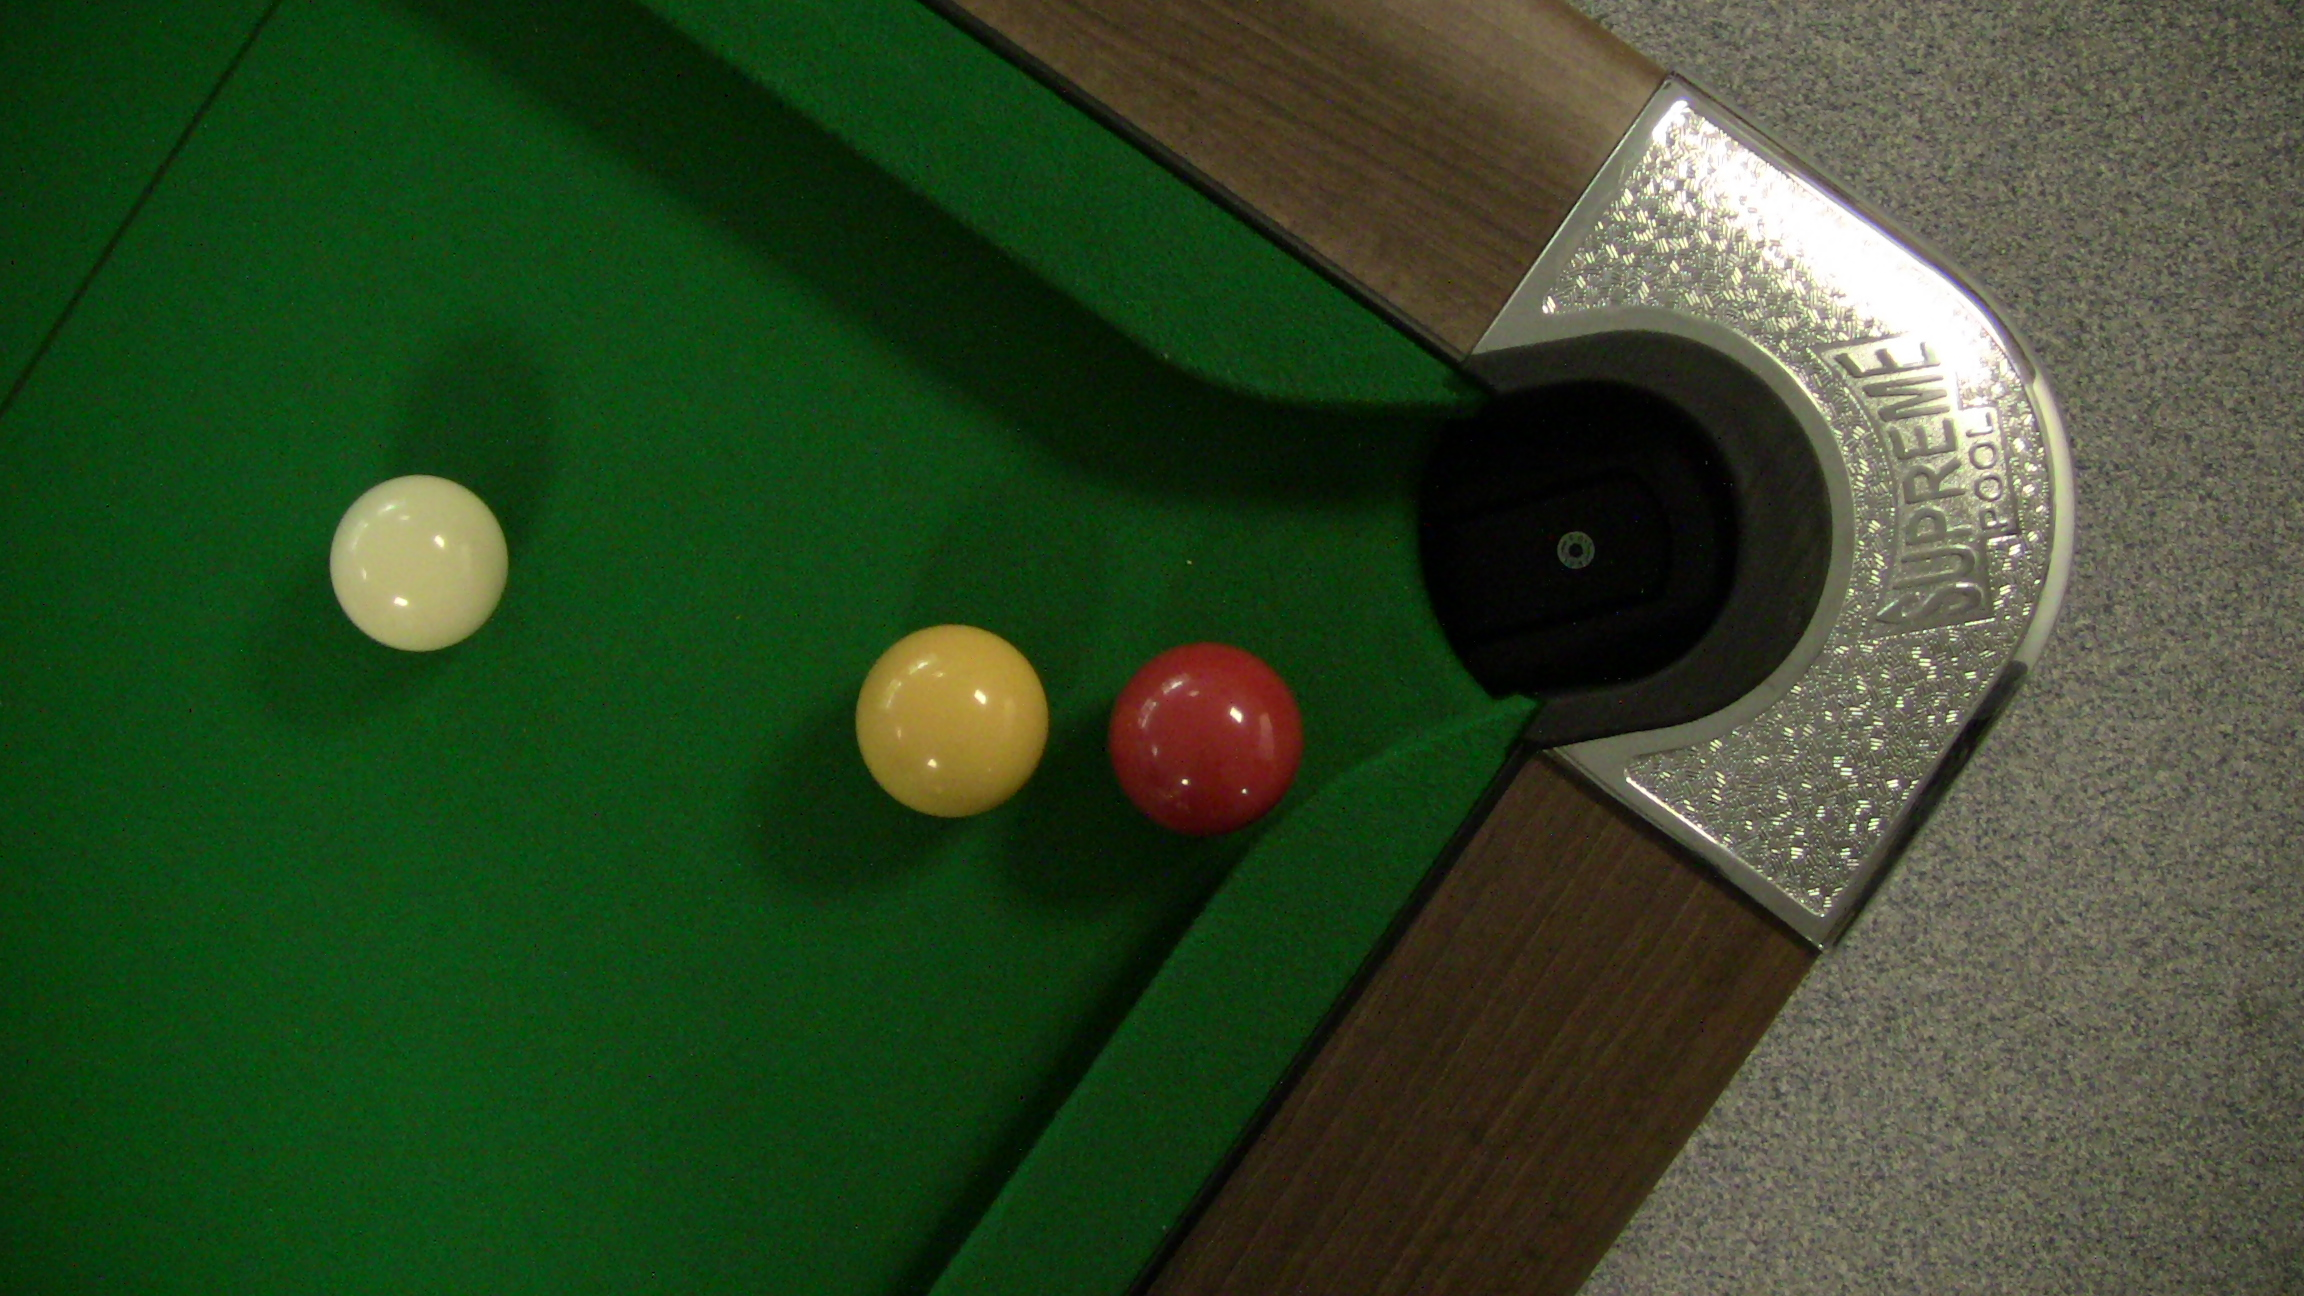 File:British-pool-table-pocket.JPG - Wikimedia Commons